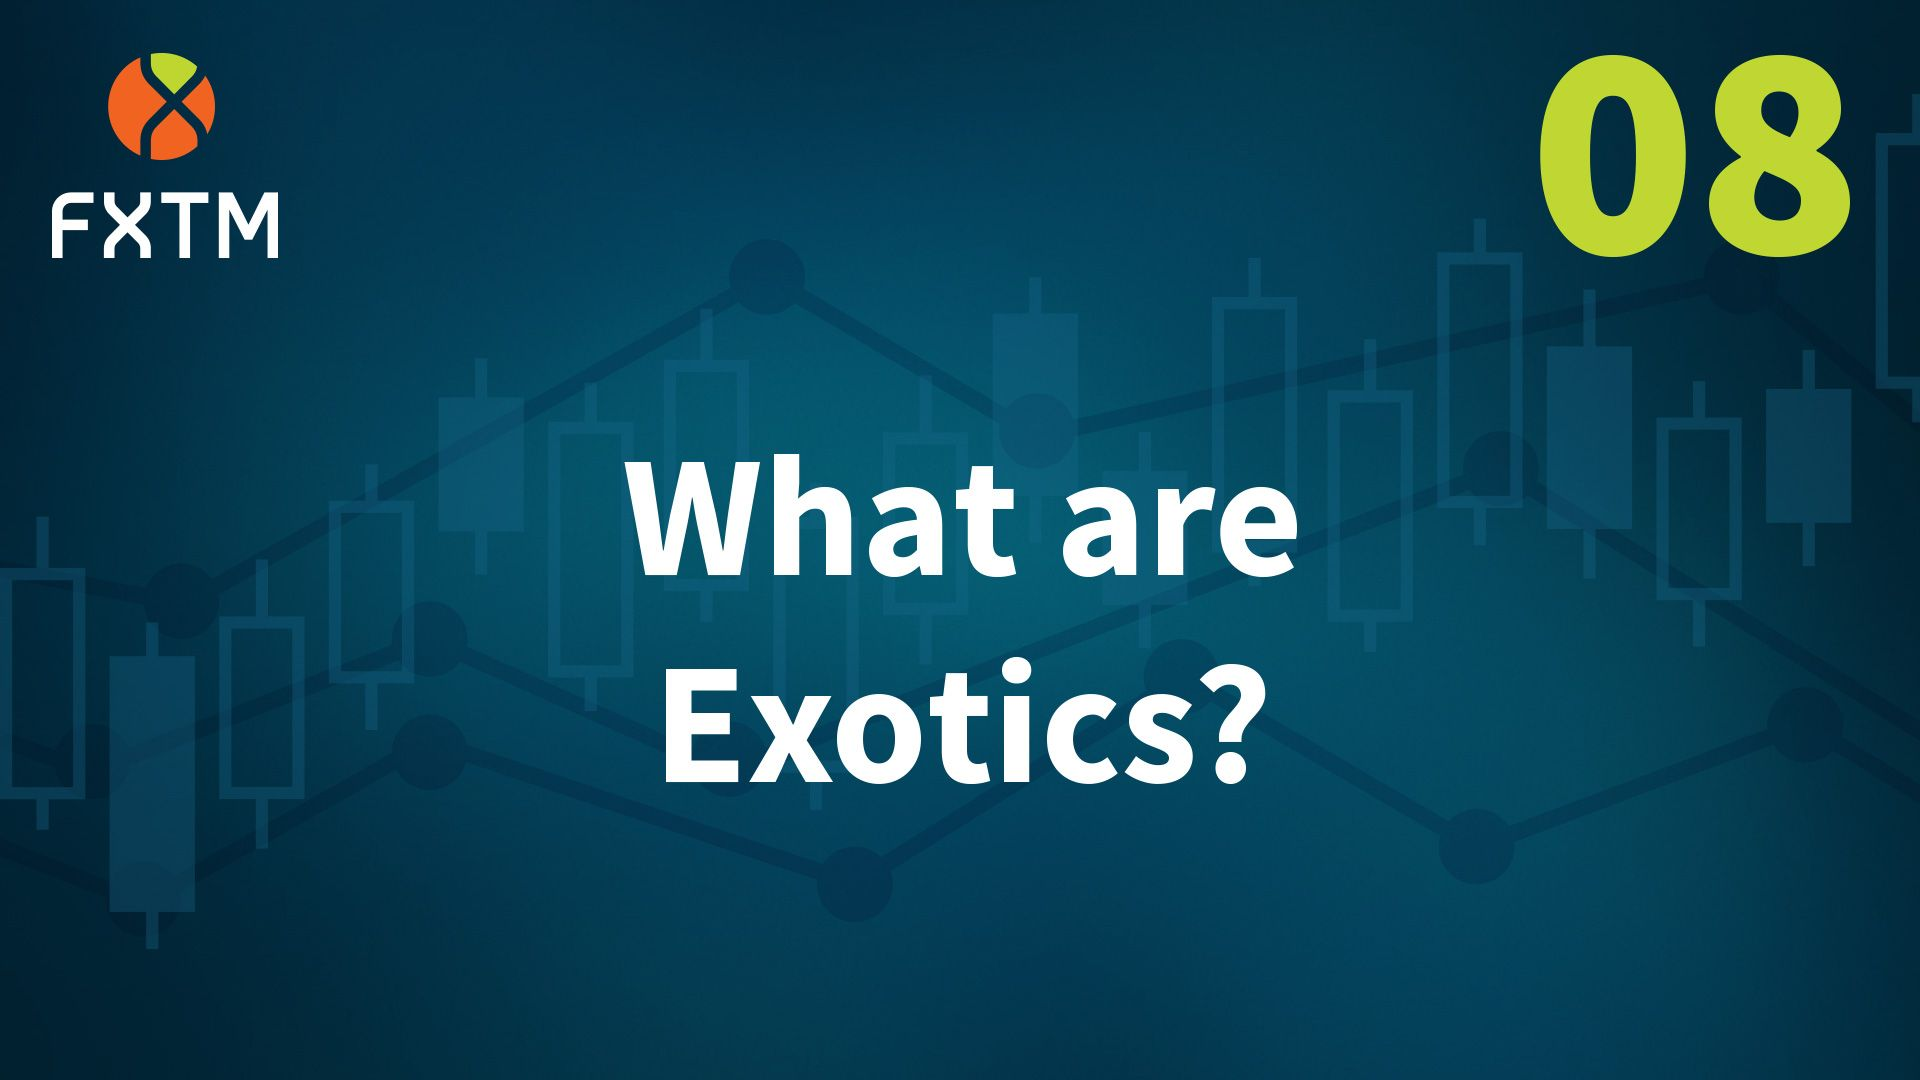 What are Exotics?